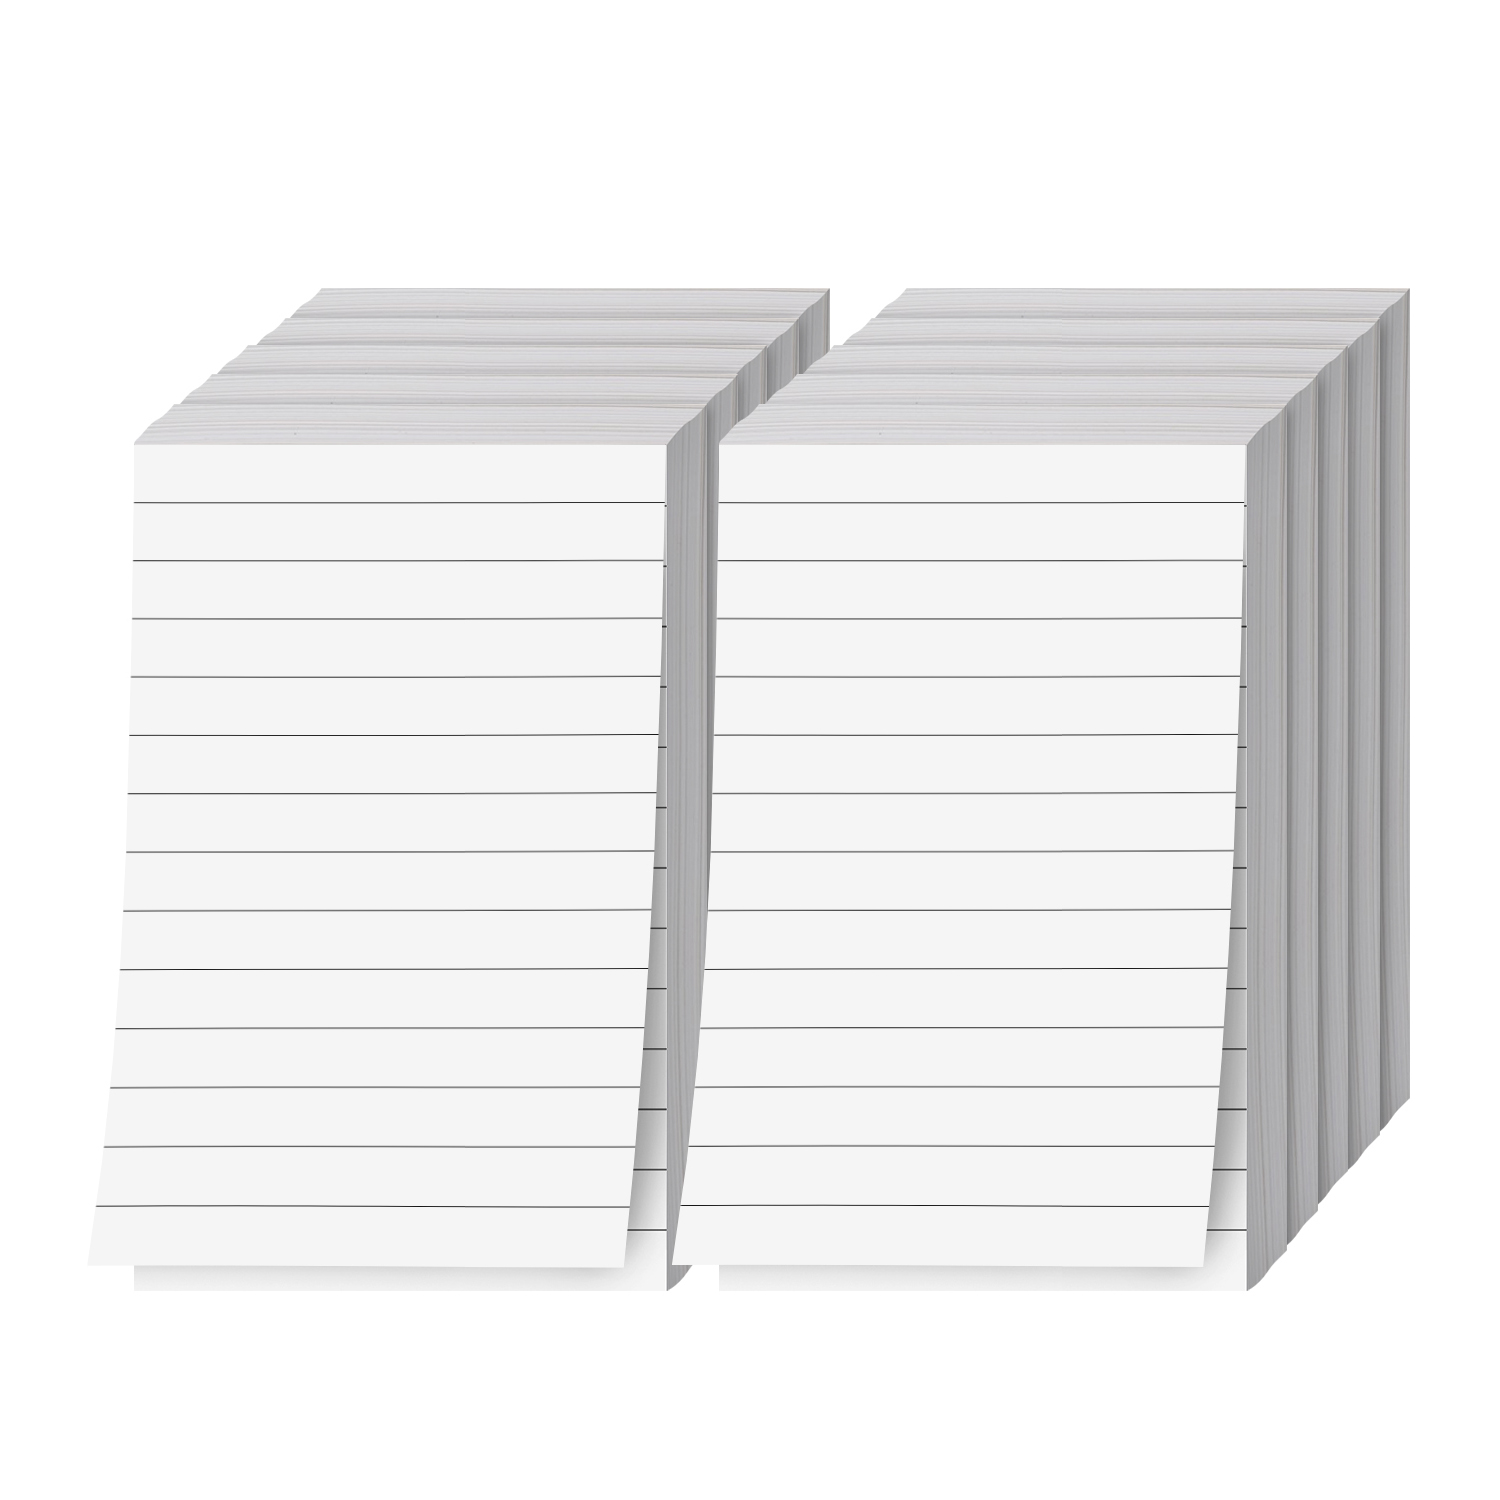 Ruled White Memo Pads